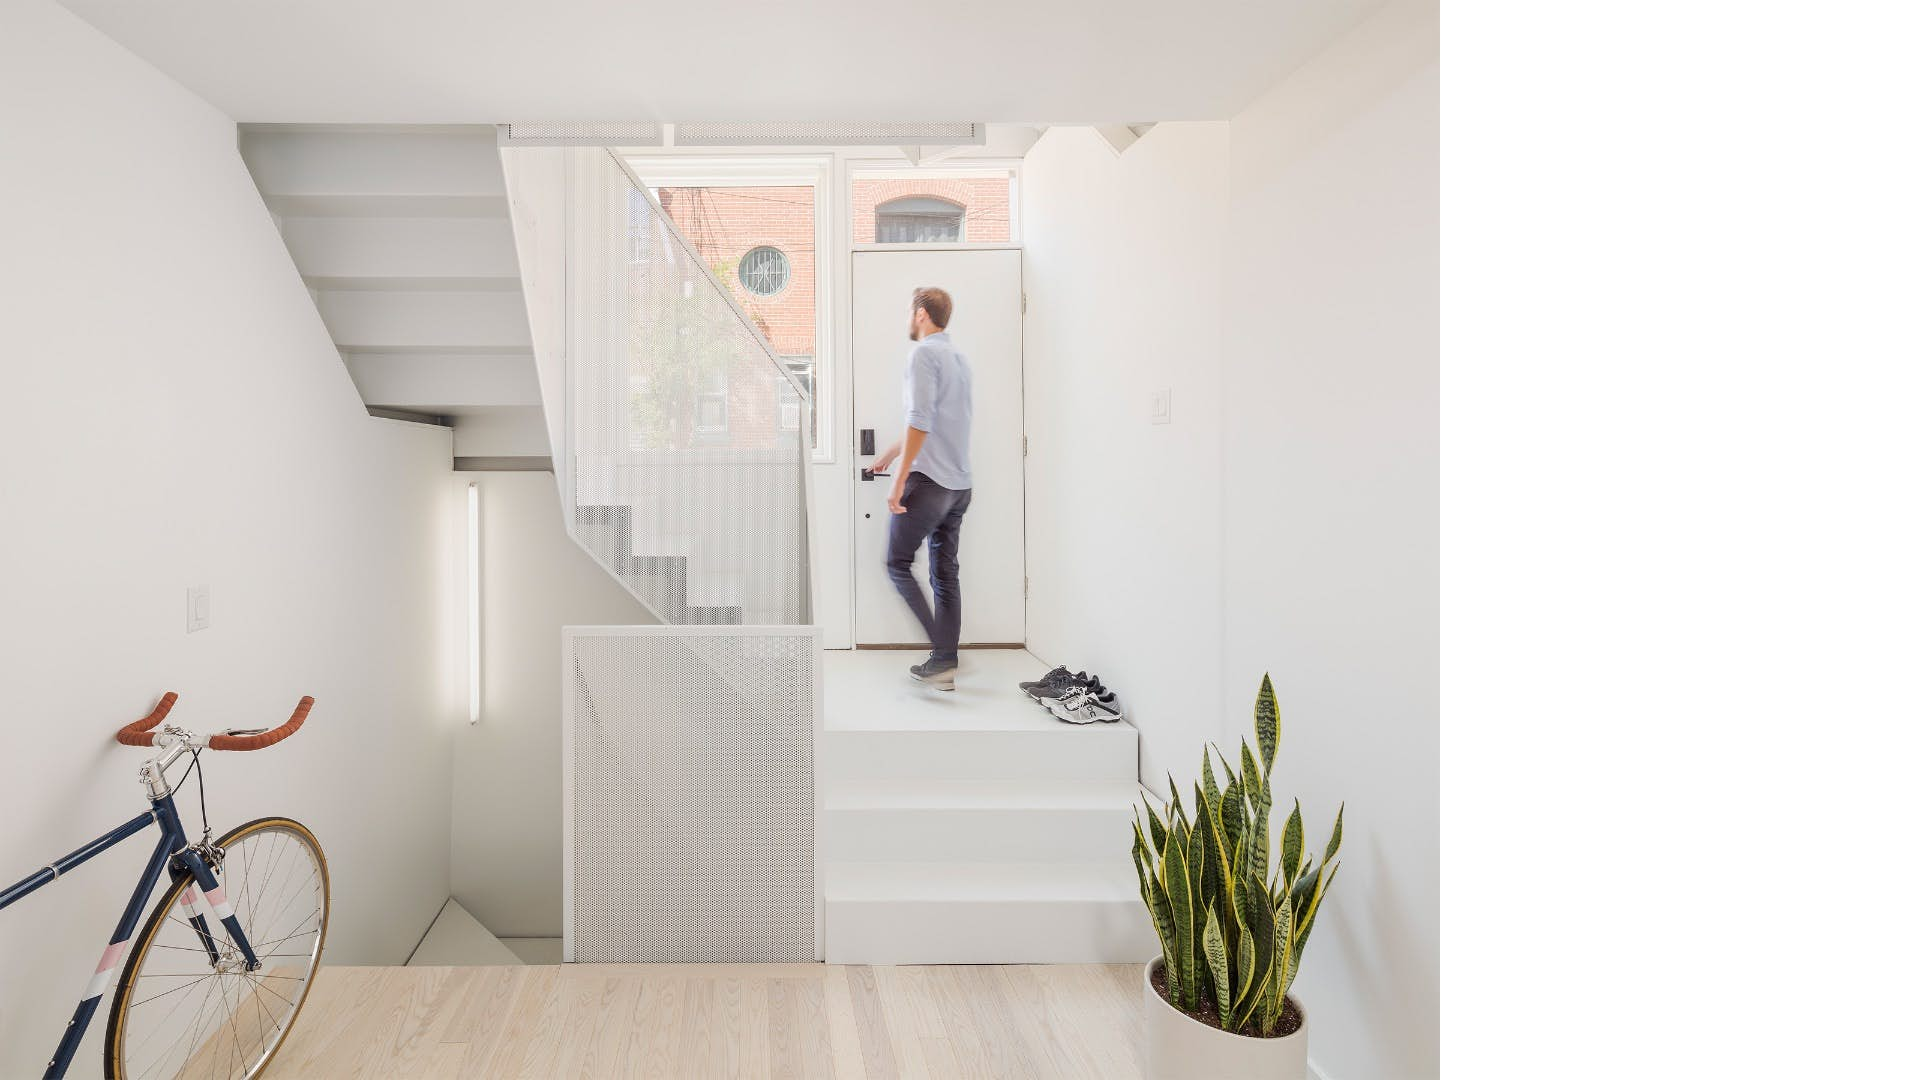 2019 Housing Awards By The American Institute Of Architects